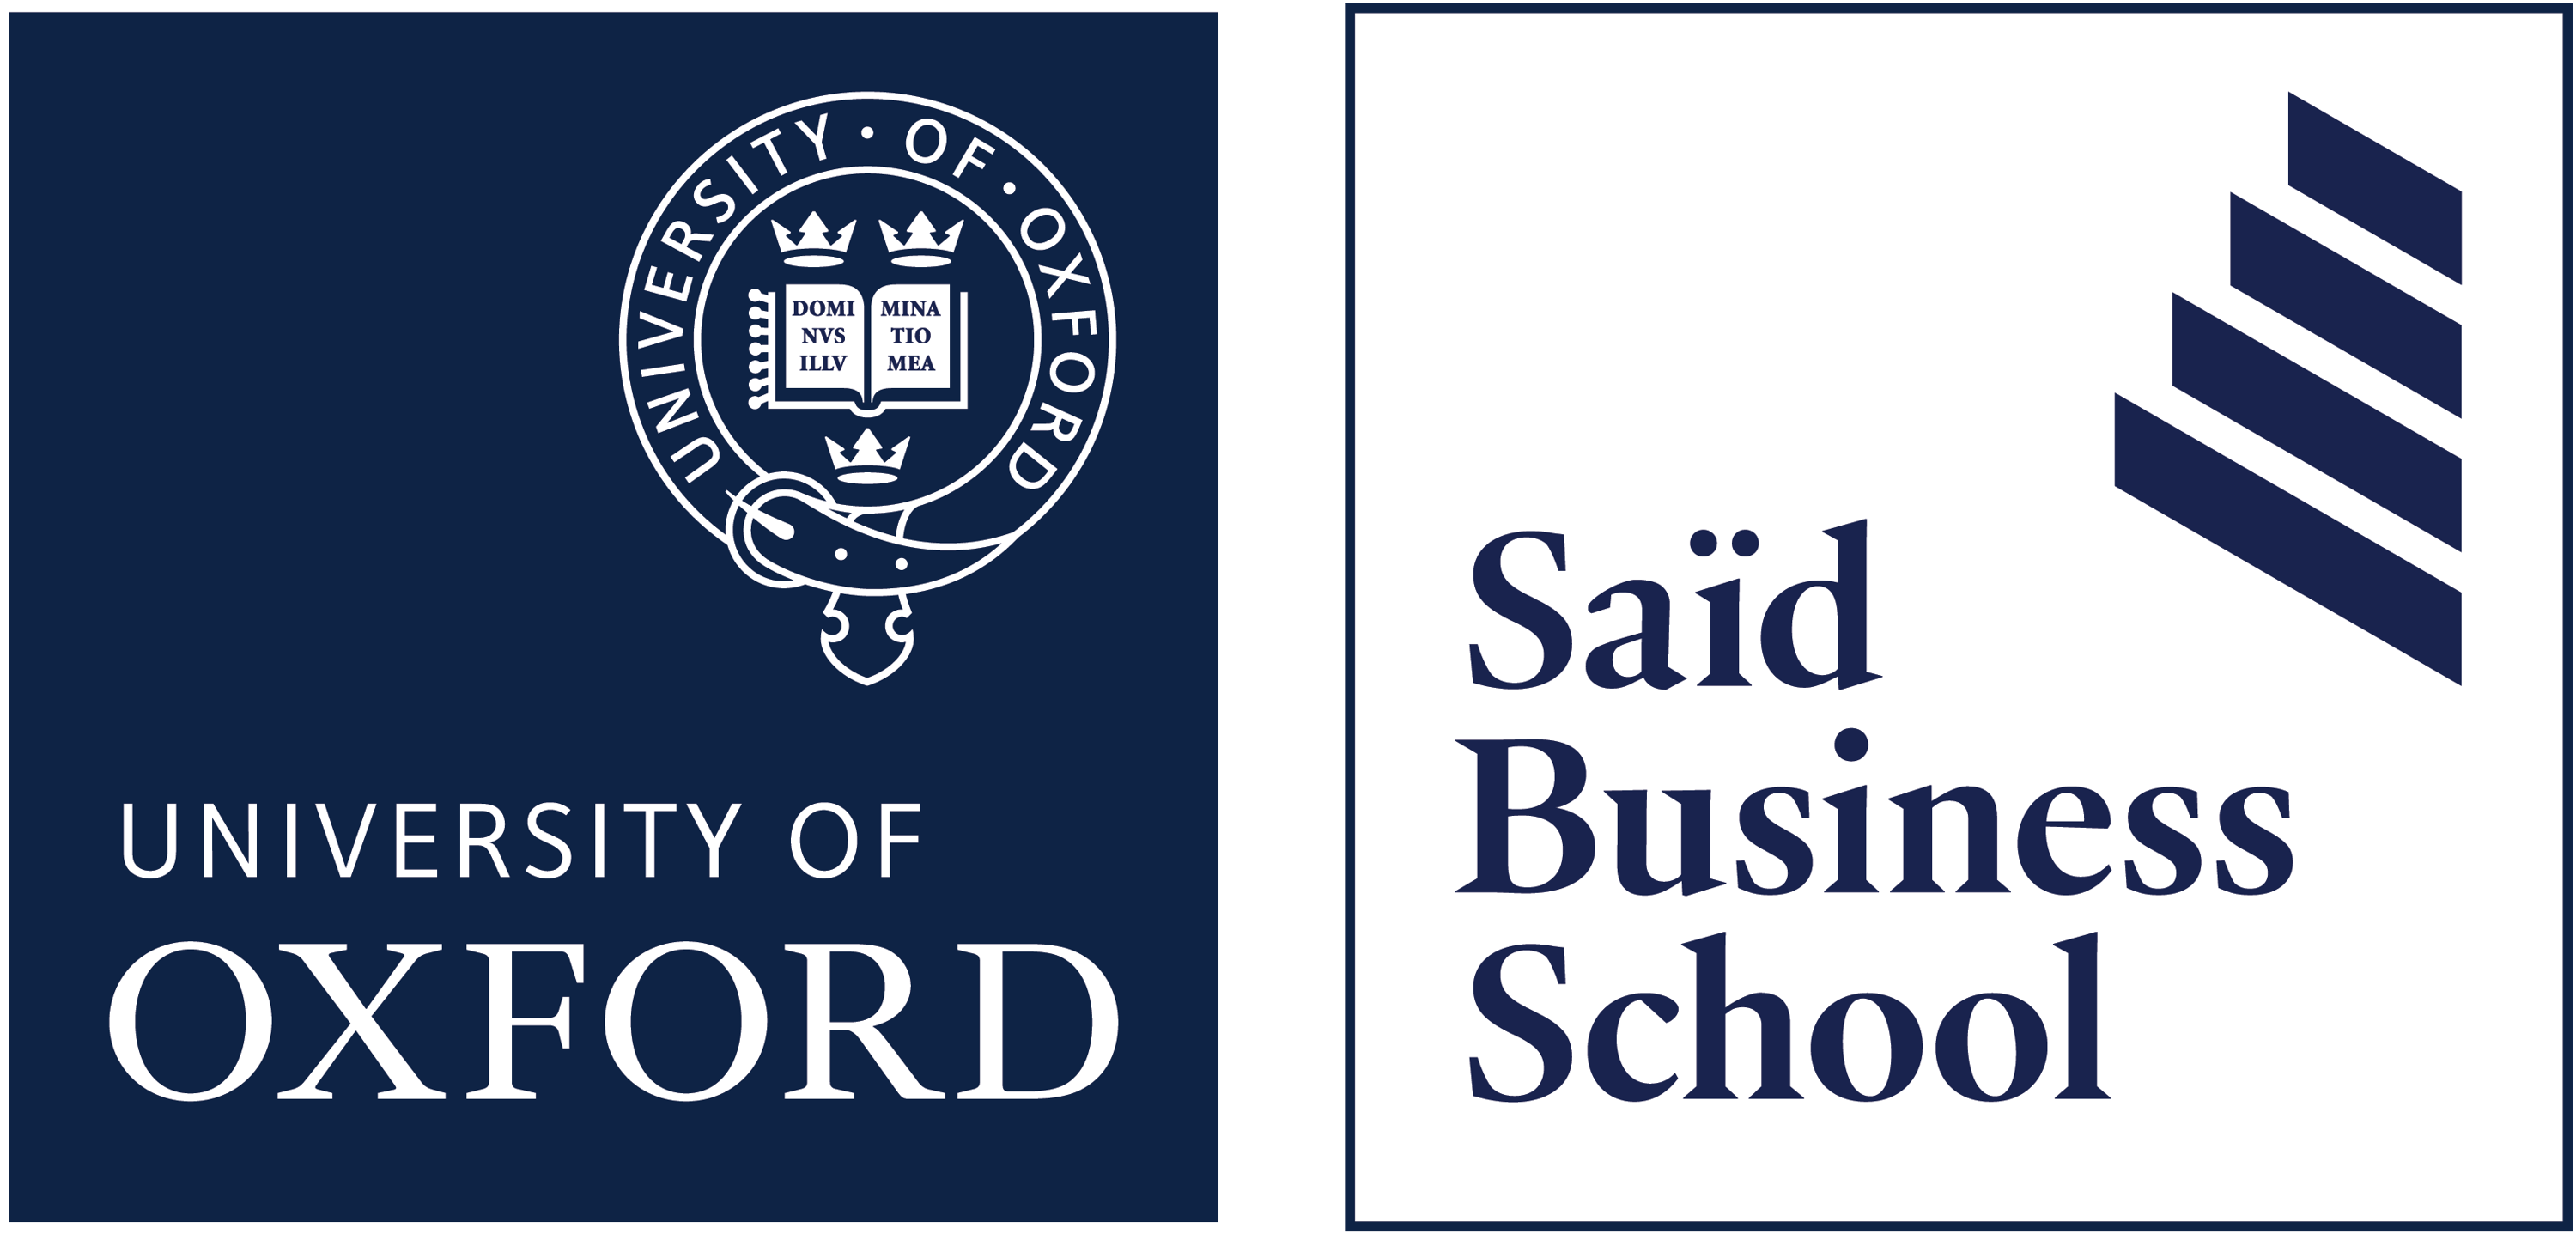 Saïd Business School, University of Oxford logo